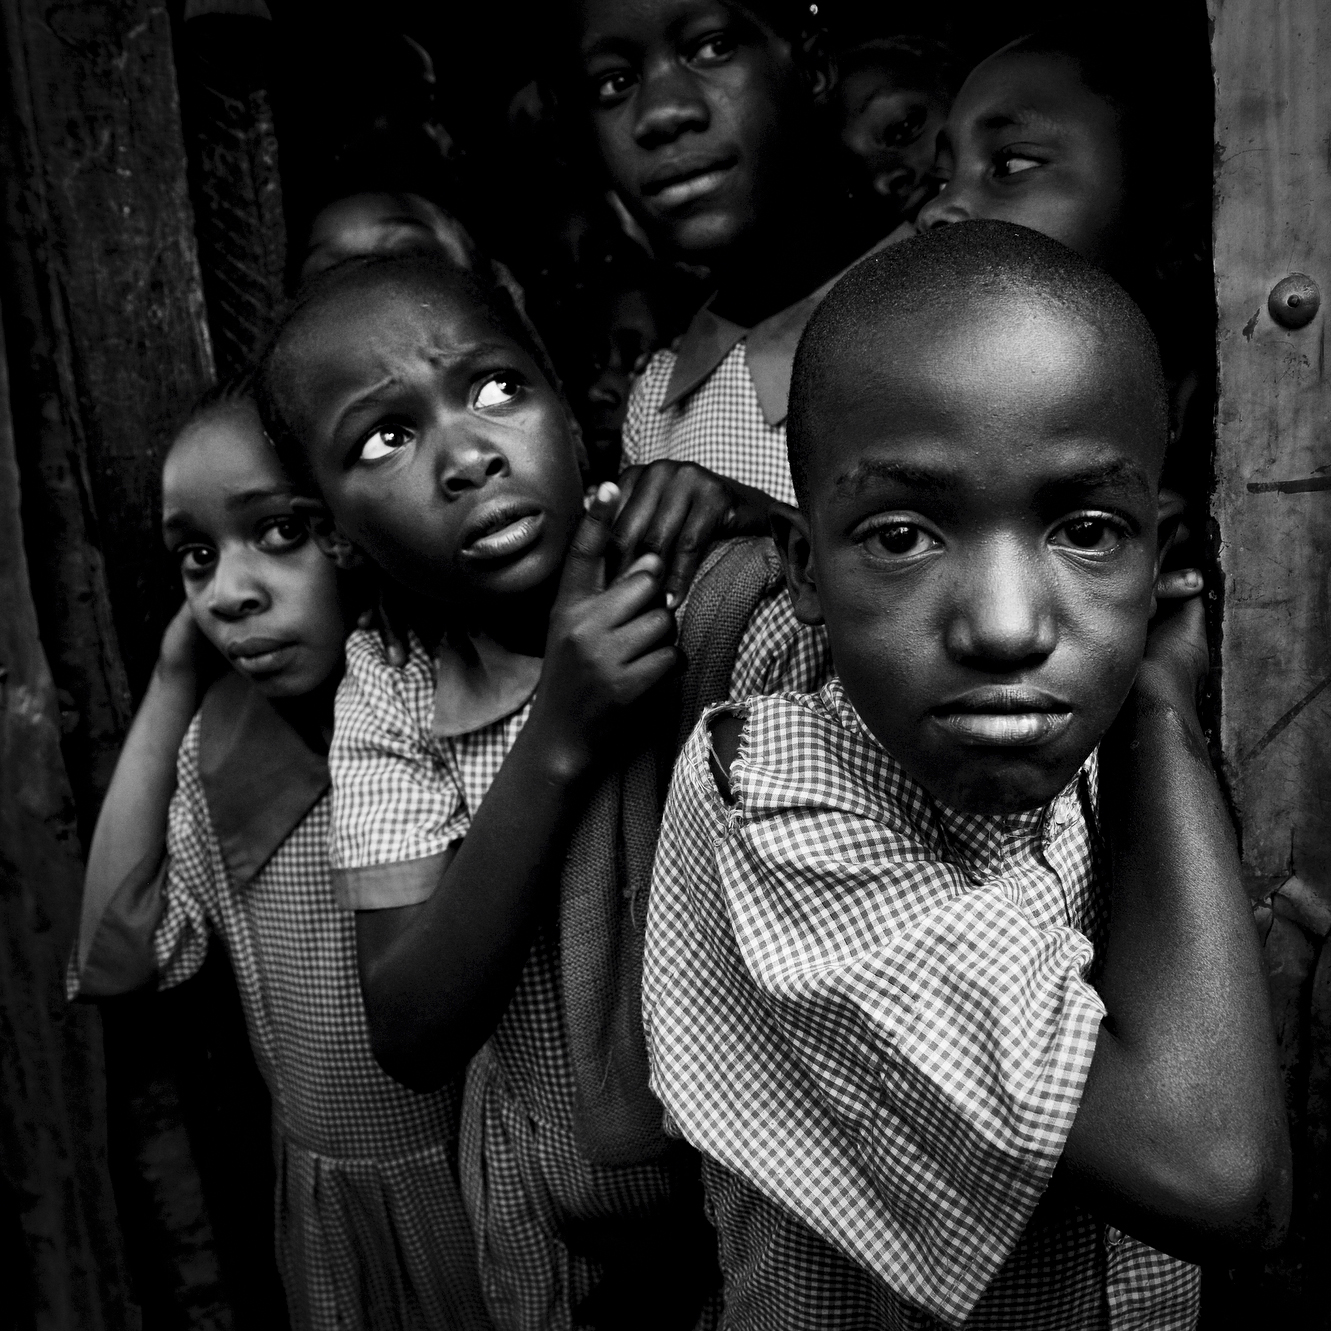 Nairobi, Kenya.